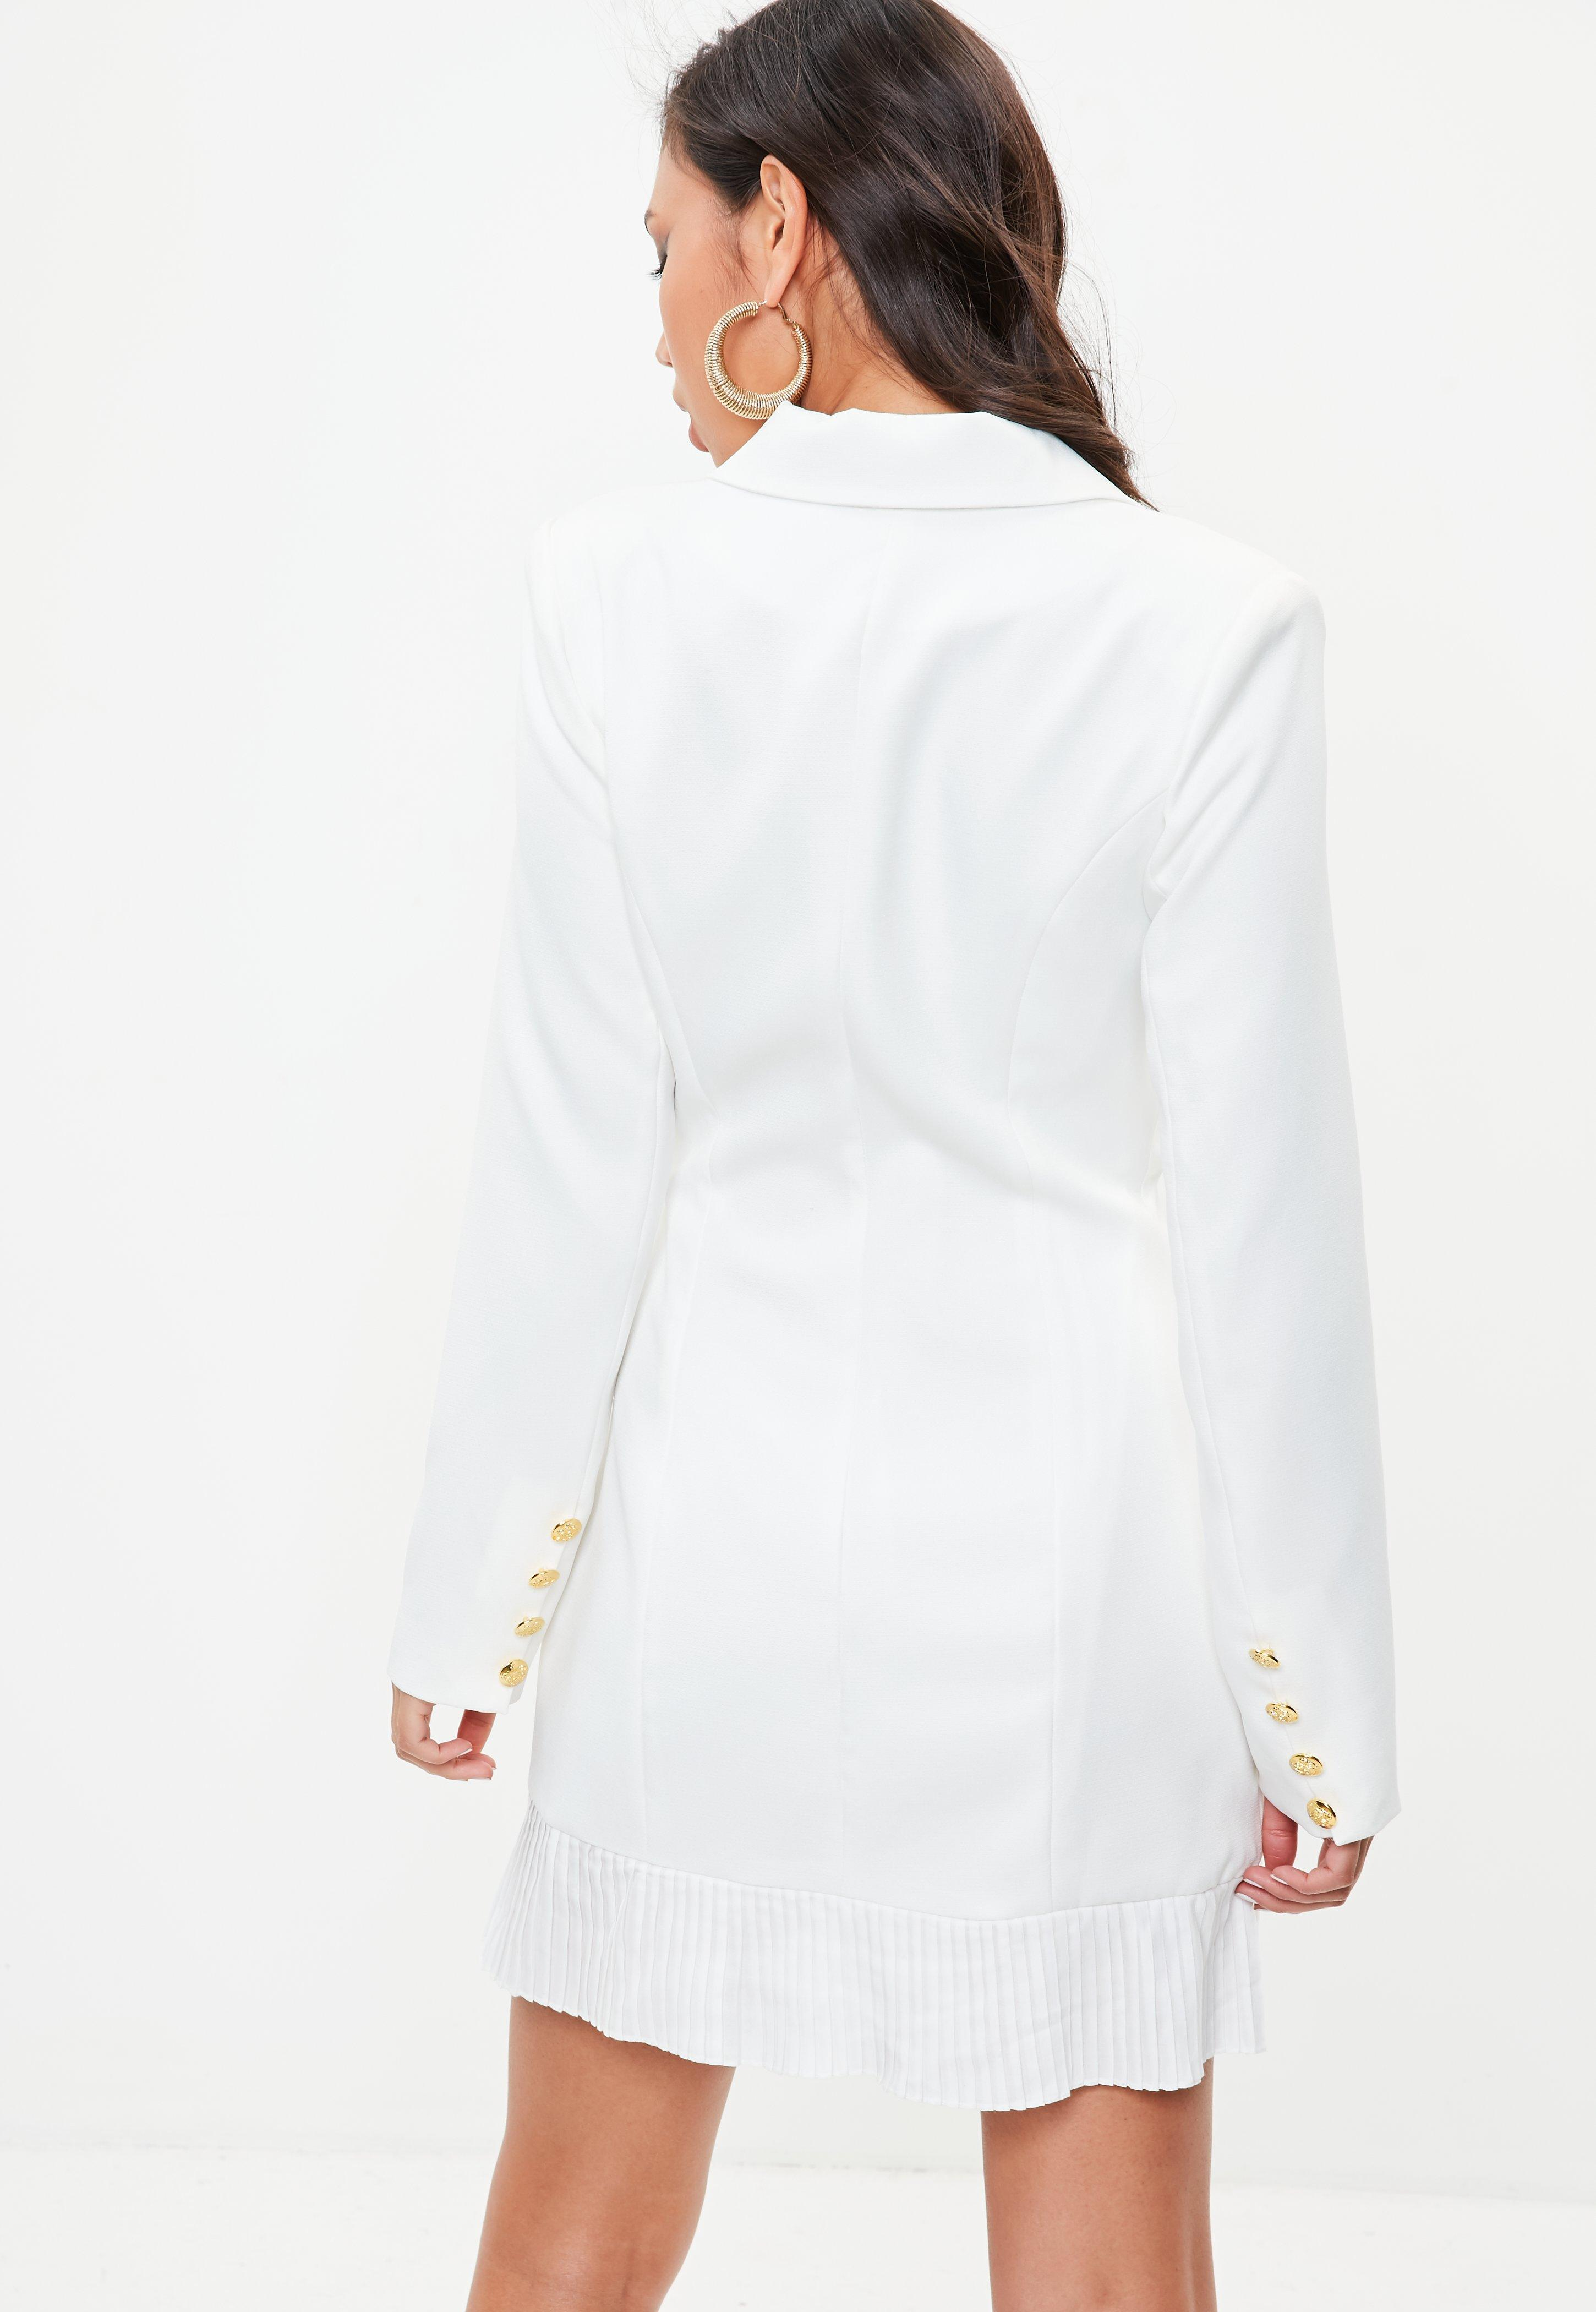 aa2664286275 Missguided Tall White Tailored Gold Button Blazer Dress in White - Lyst